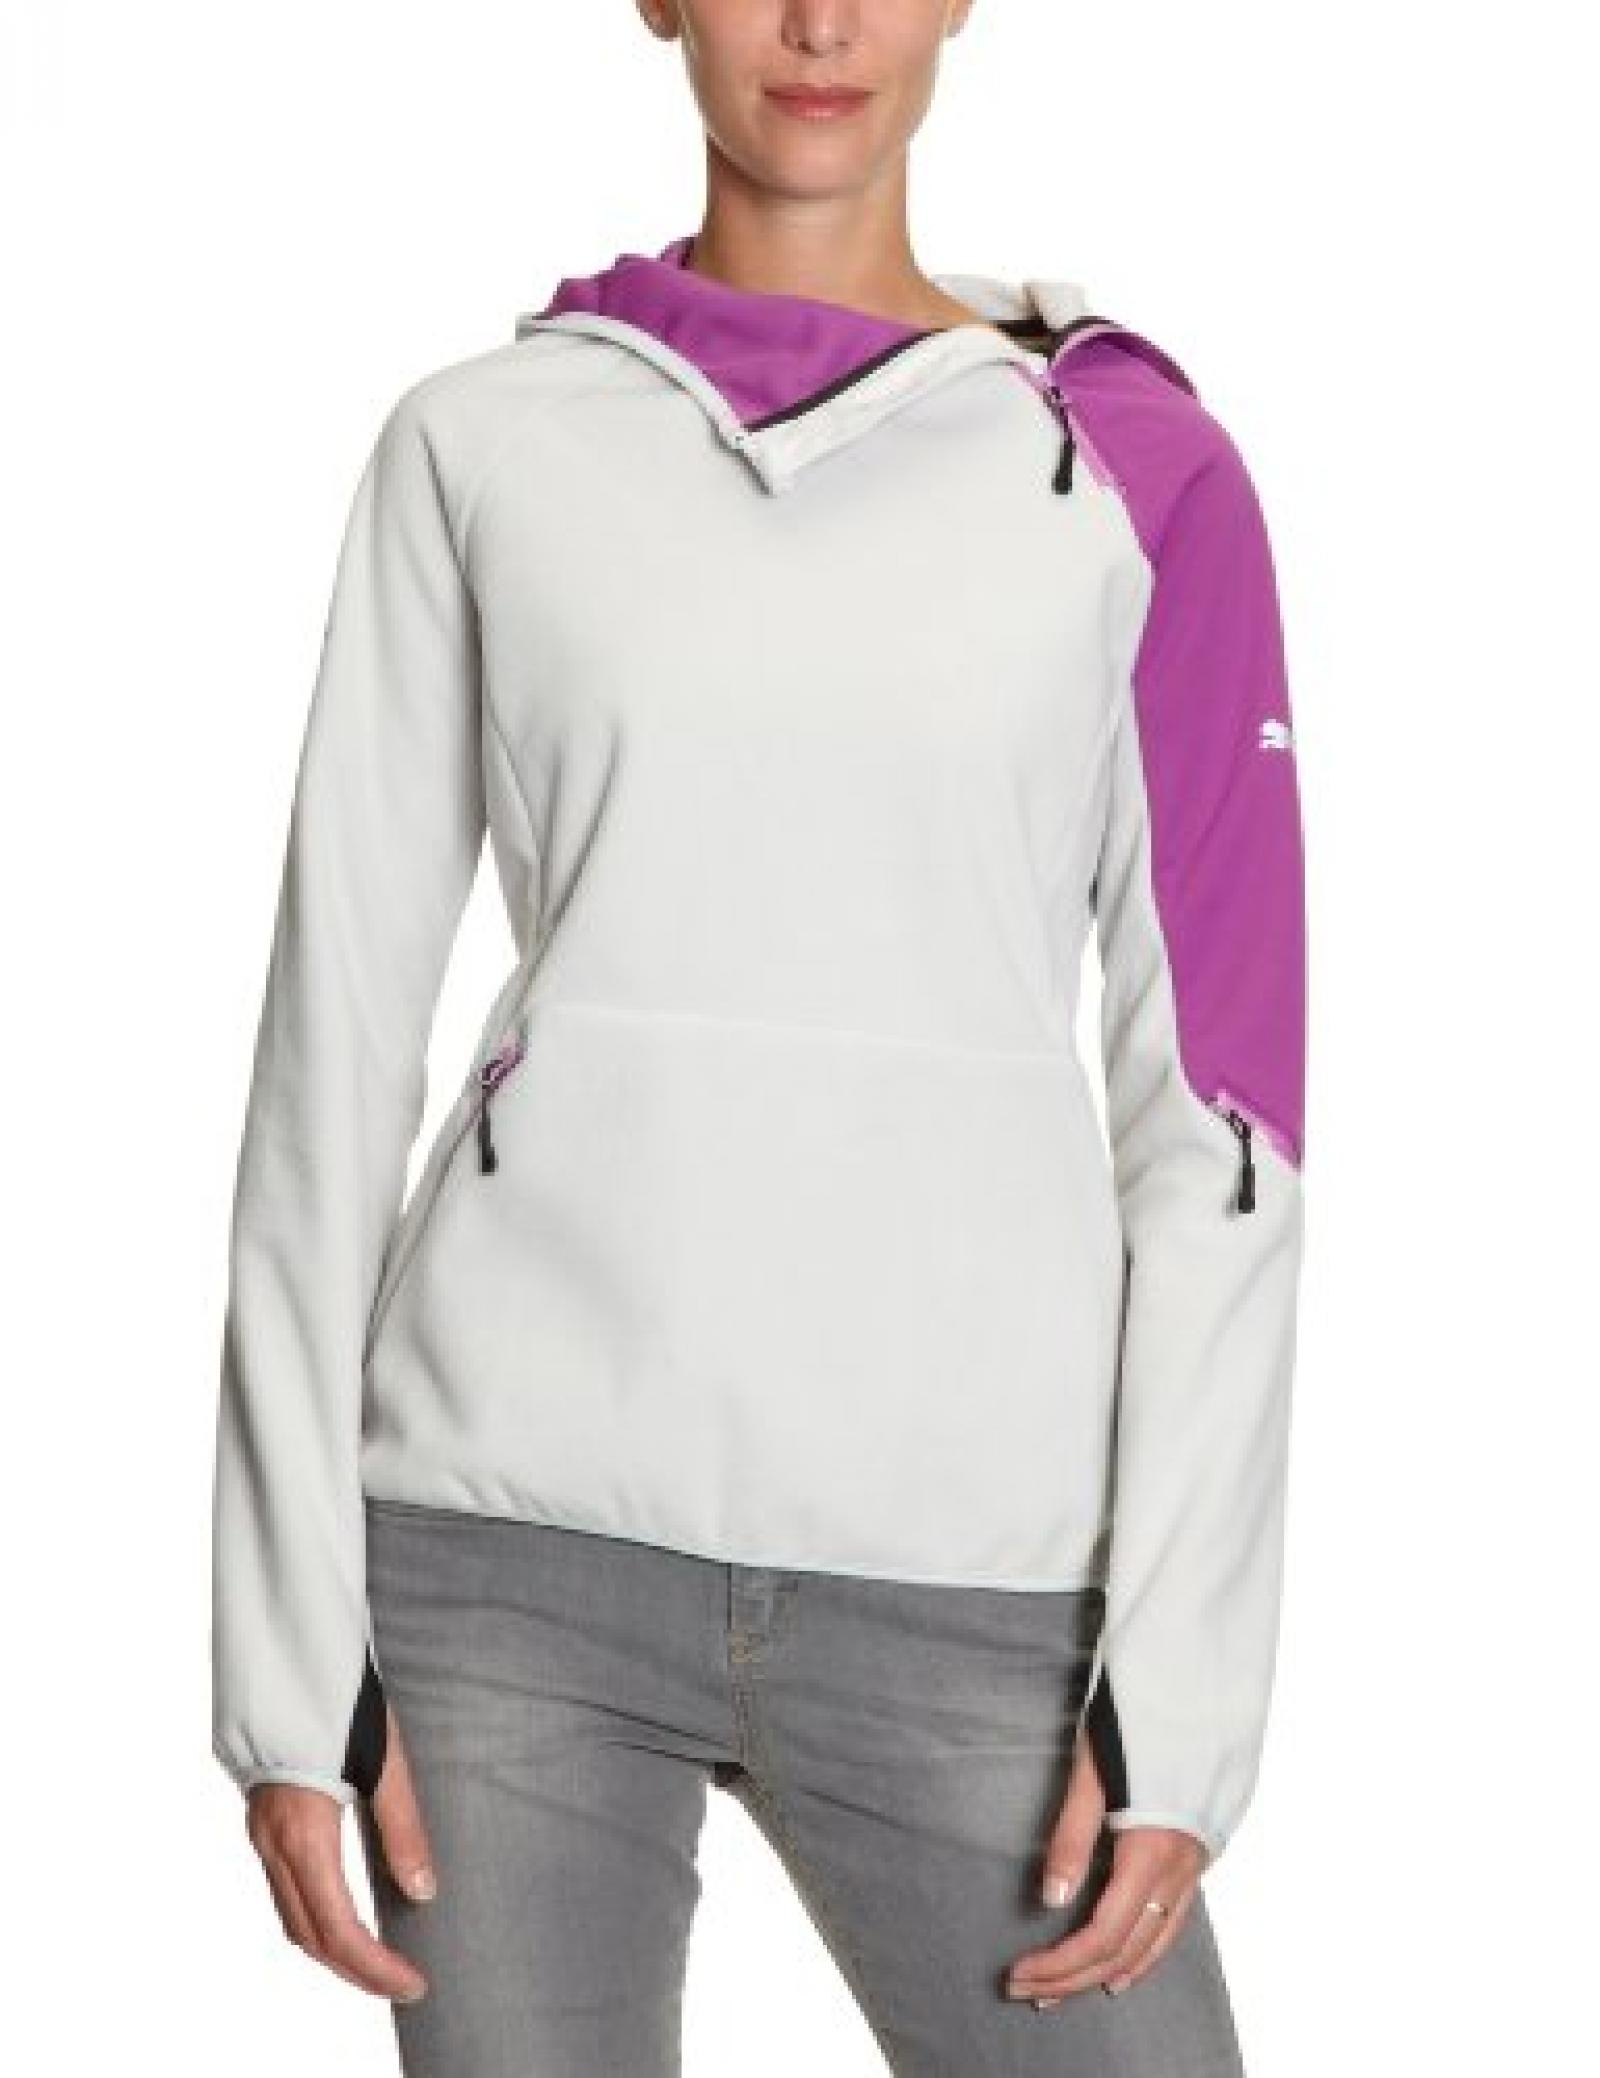 PUMA Damen Multifunktionsjacke Windstop 1/2 Zip Hoody